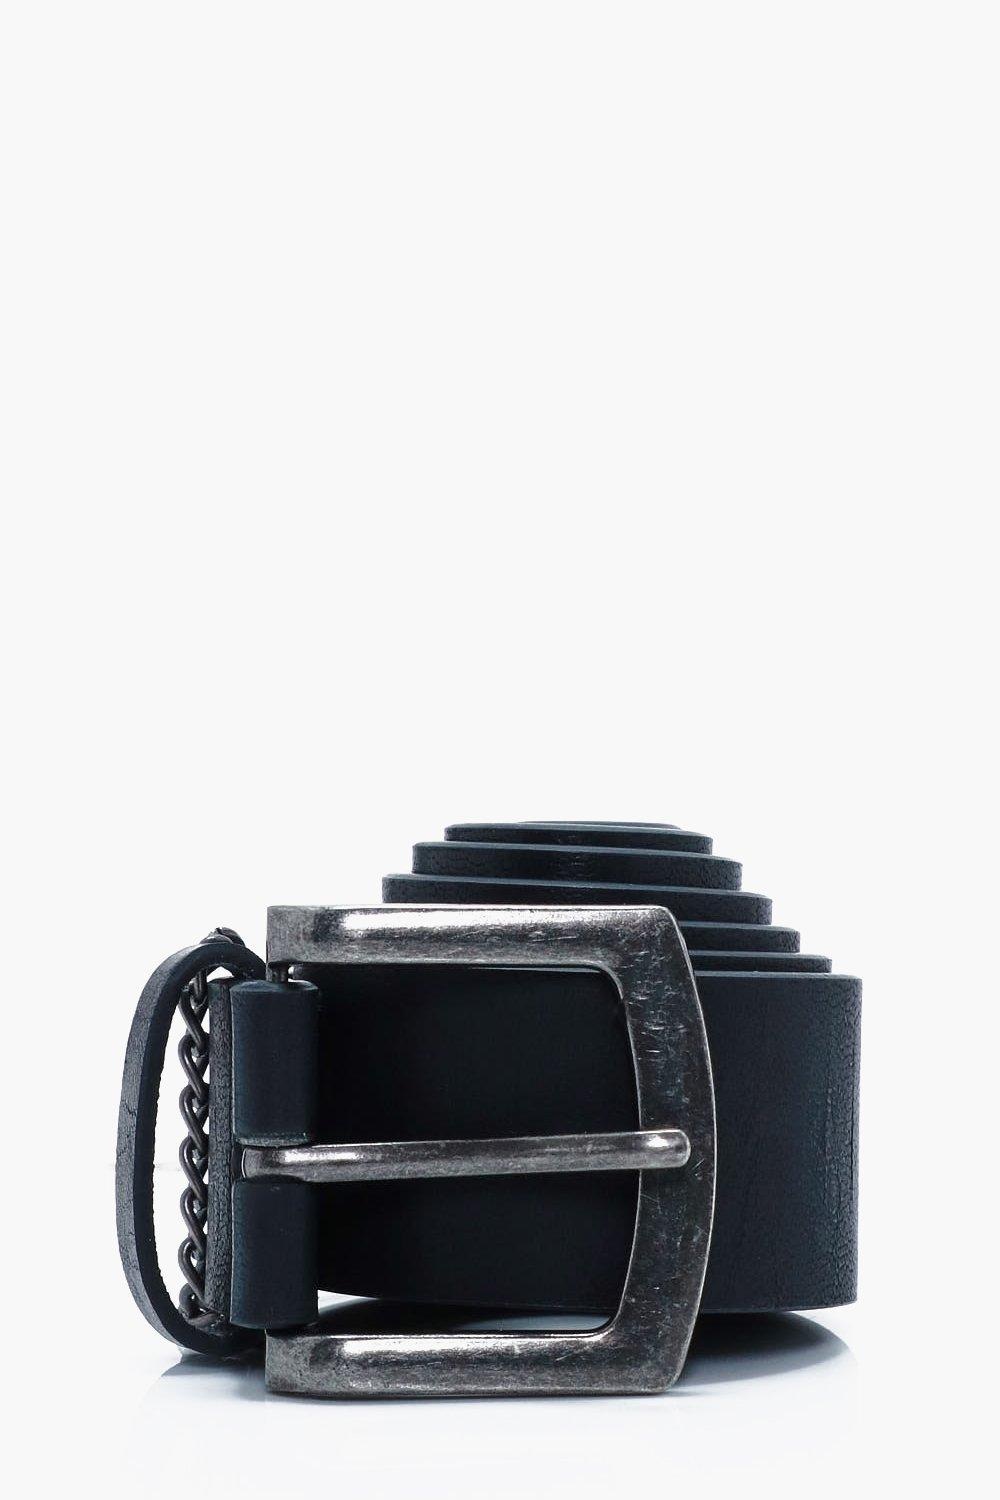 Belt With Chain Detail - black - PU Belt With Chai